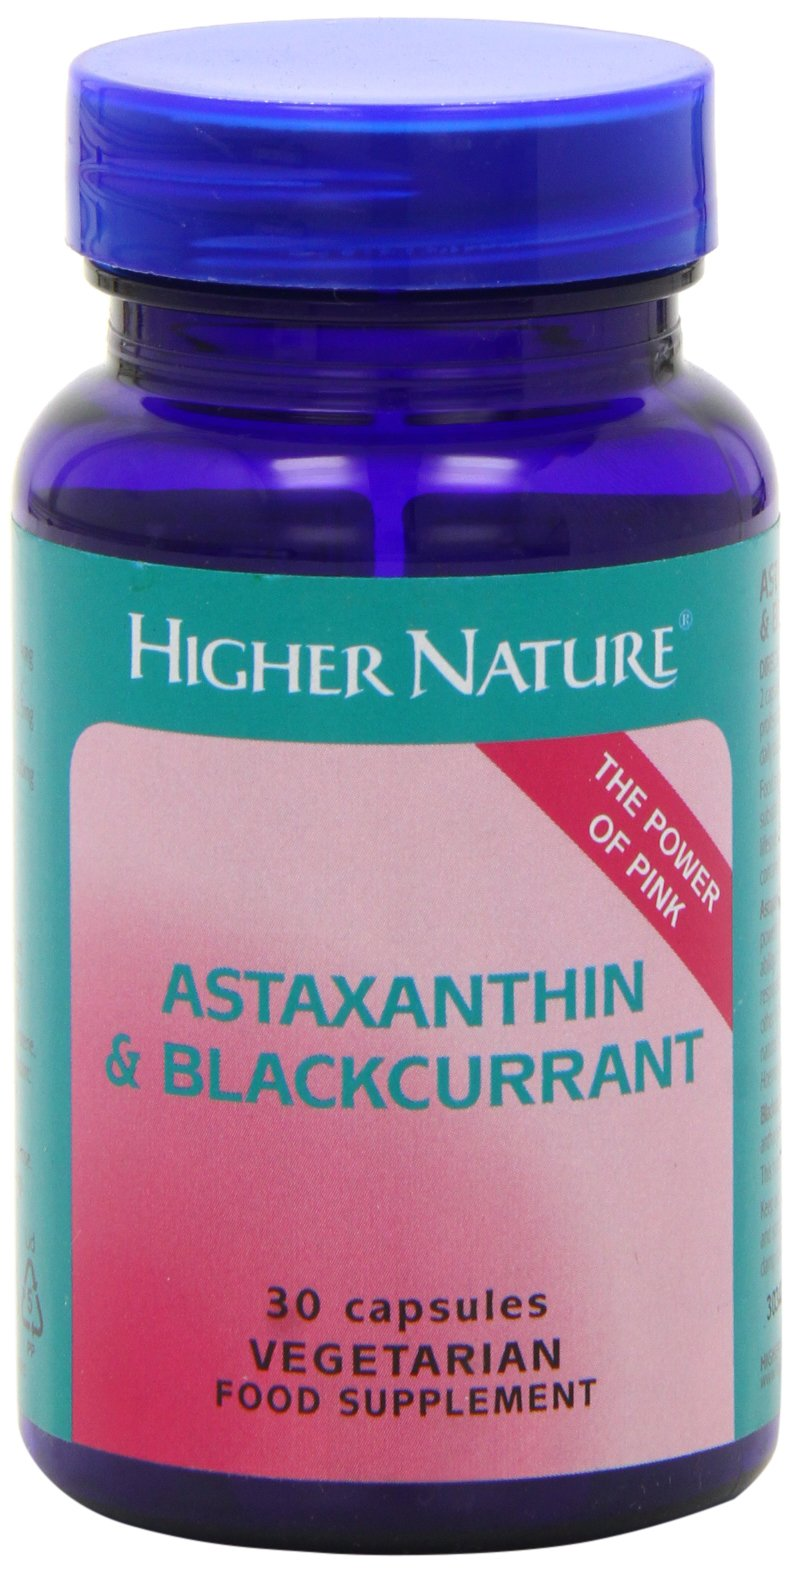 71IPMbzpjdL - Higher Nature Astaxanthin & Blackcurrant - 30 Capsules